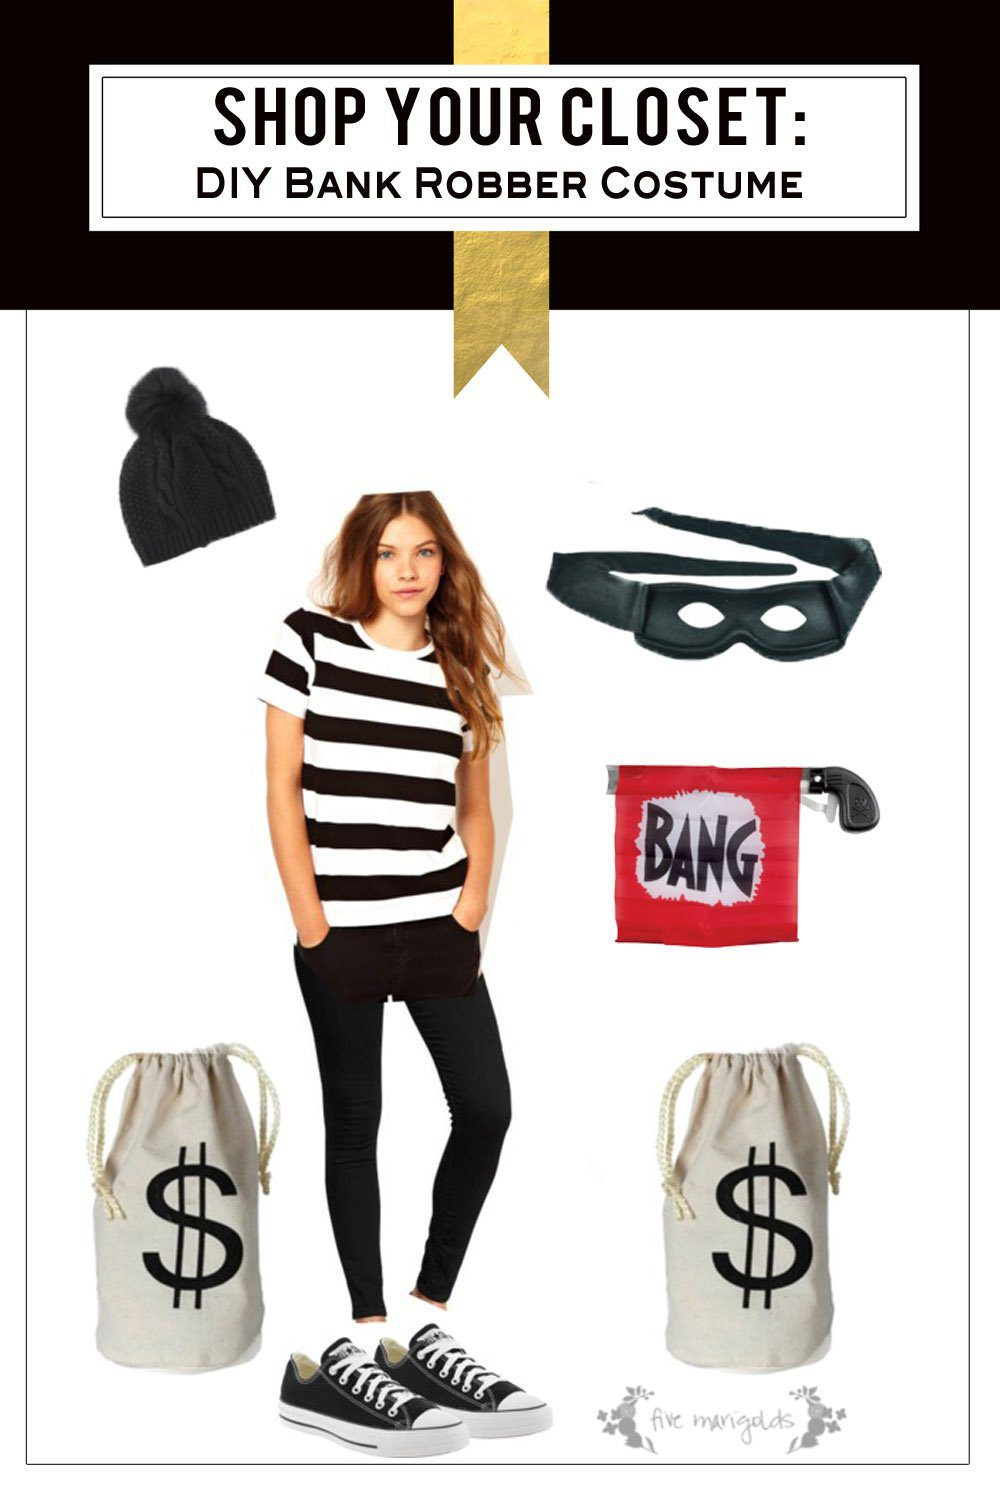 Shop your own closet for free and fabulous costumes this Halloween! Love this bank robber costume idea.